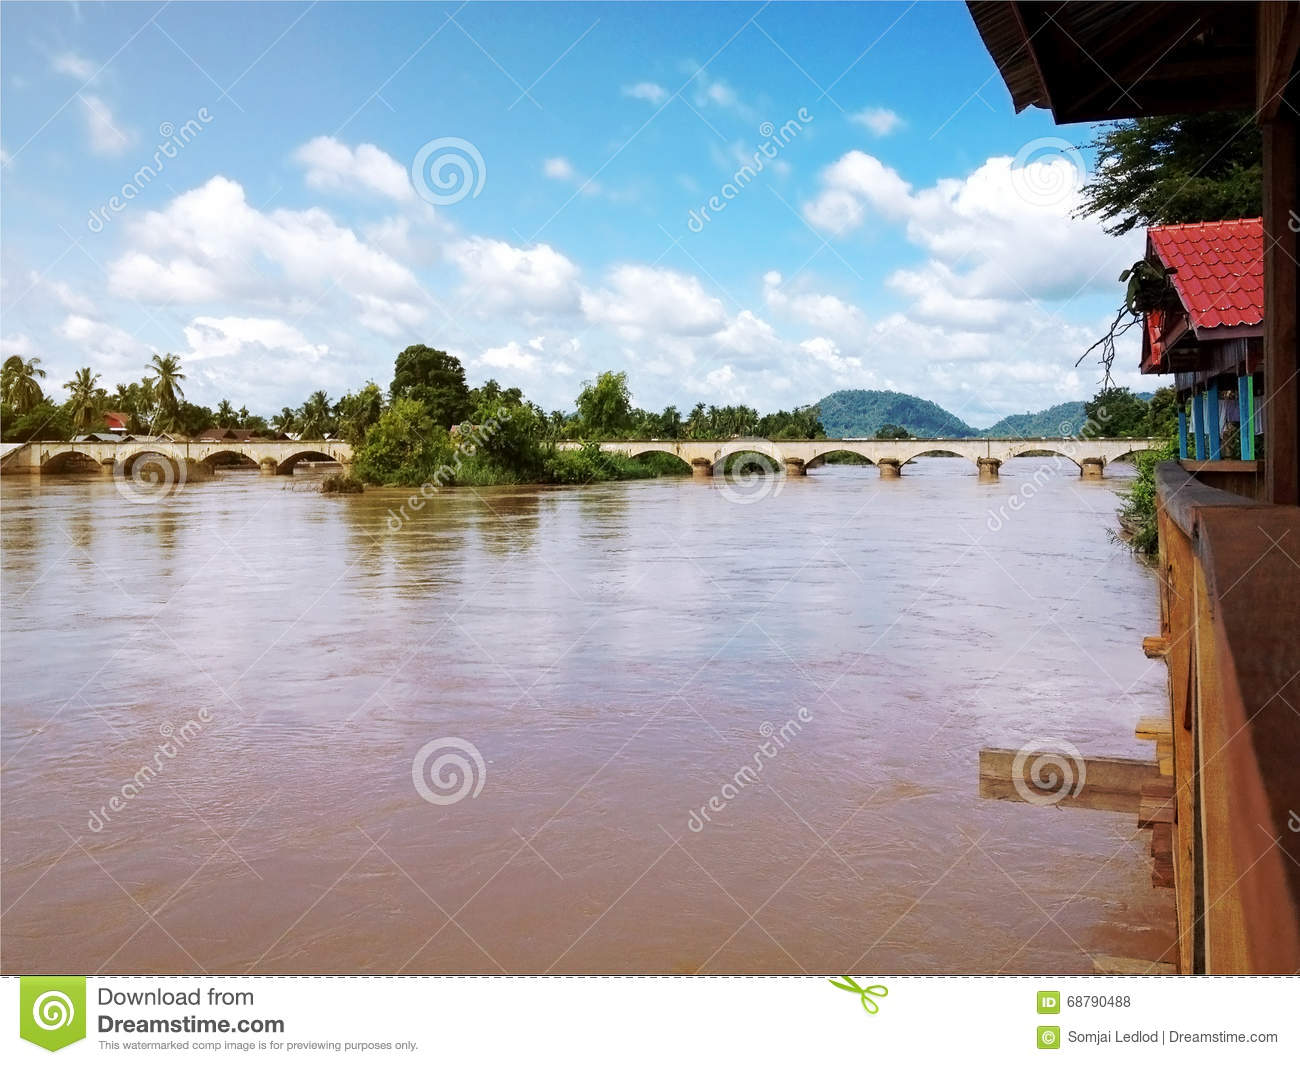 View of Mekong River and bridge between Don Det and Don Khone